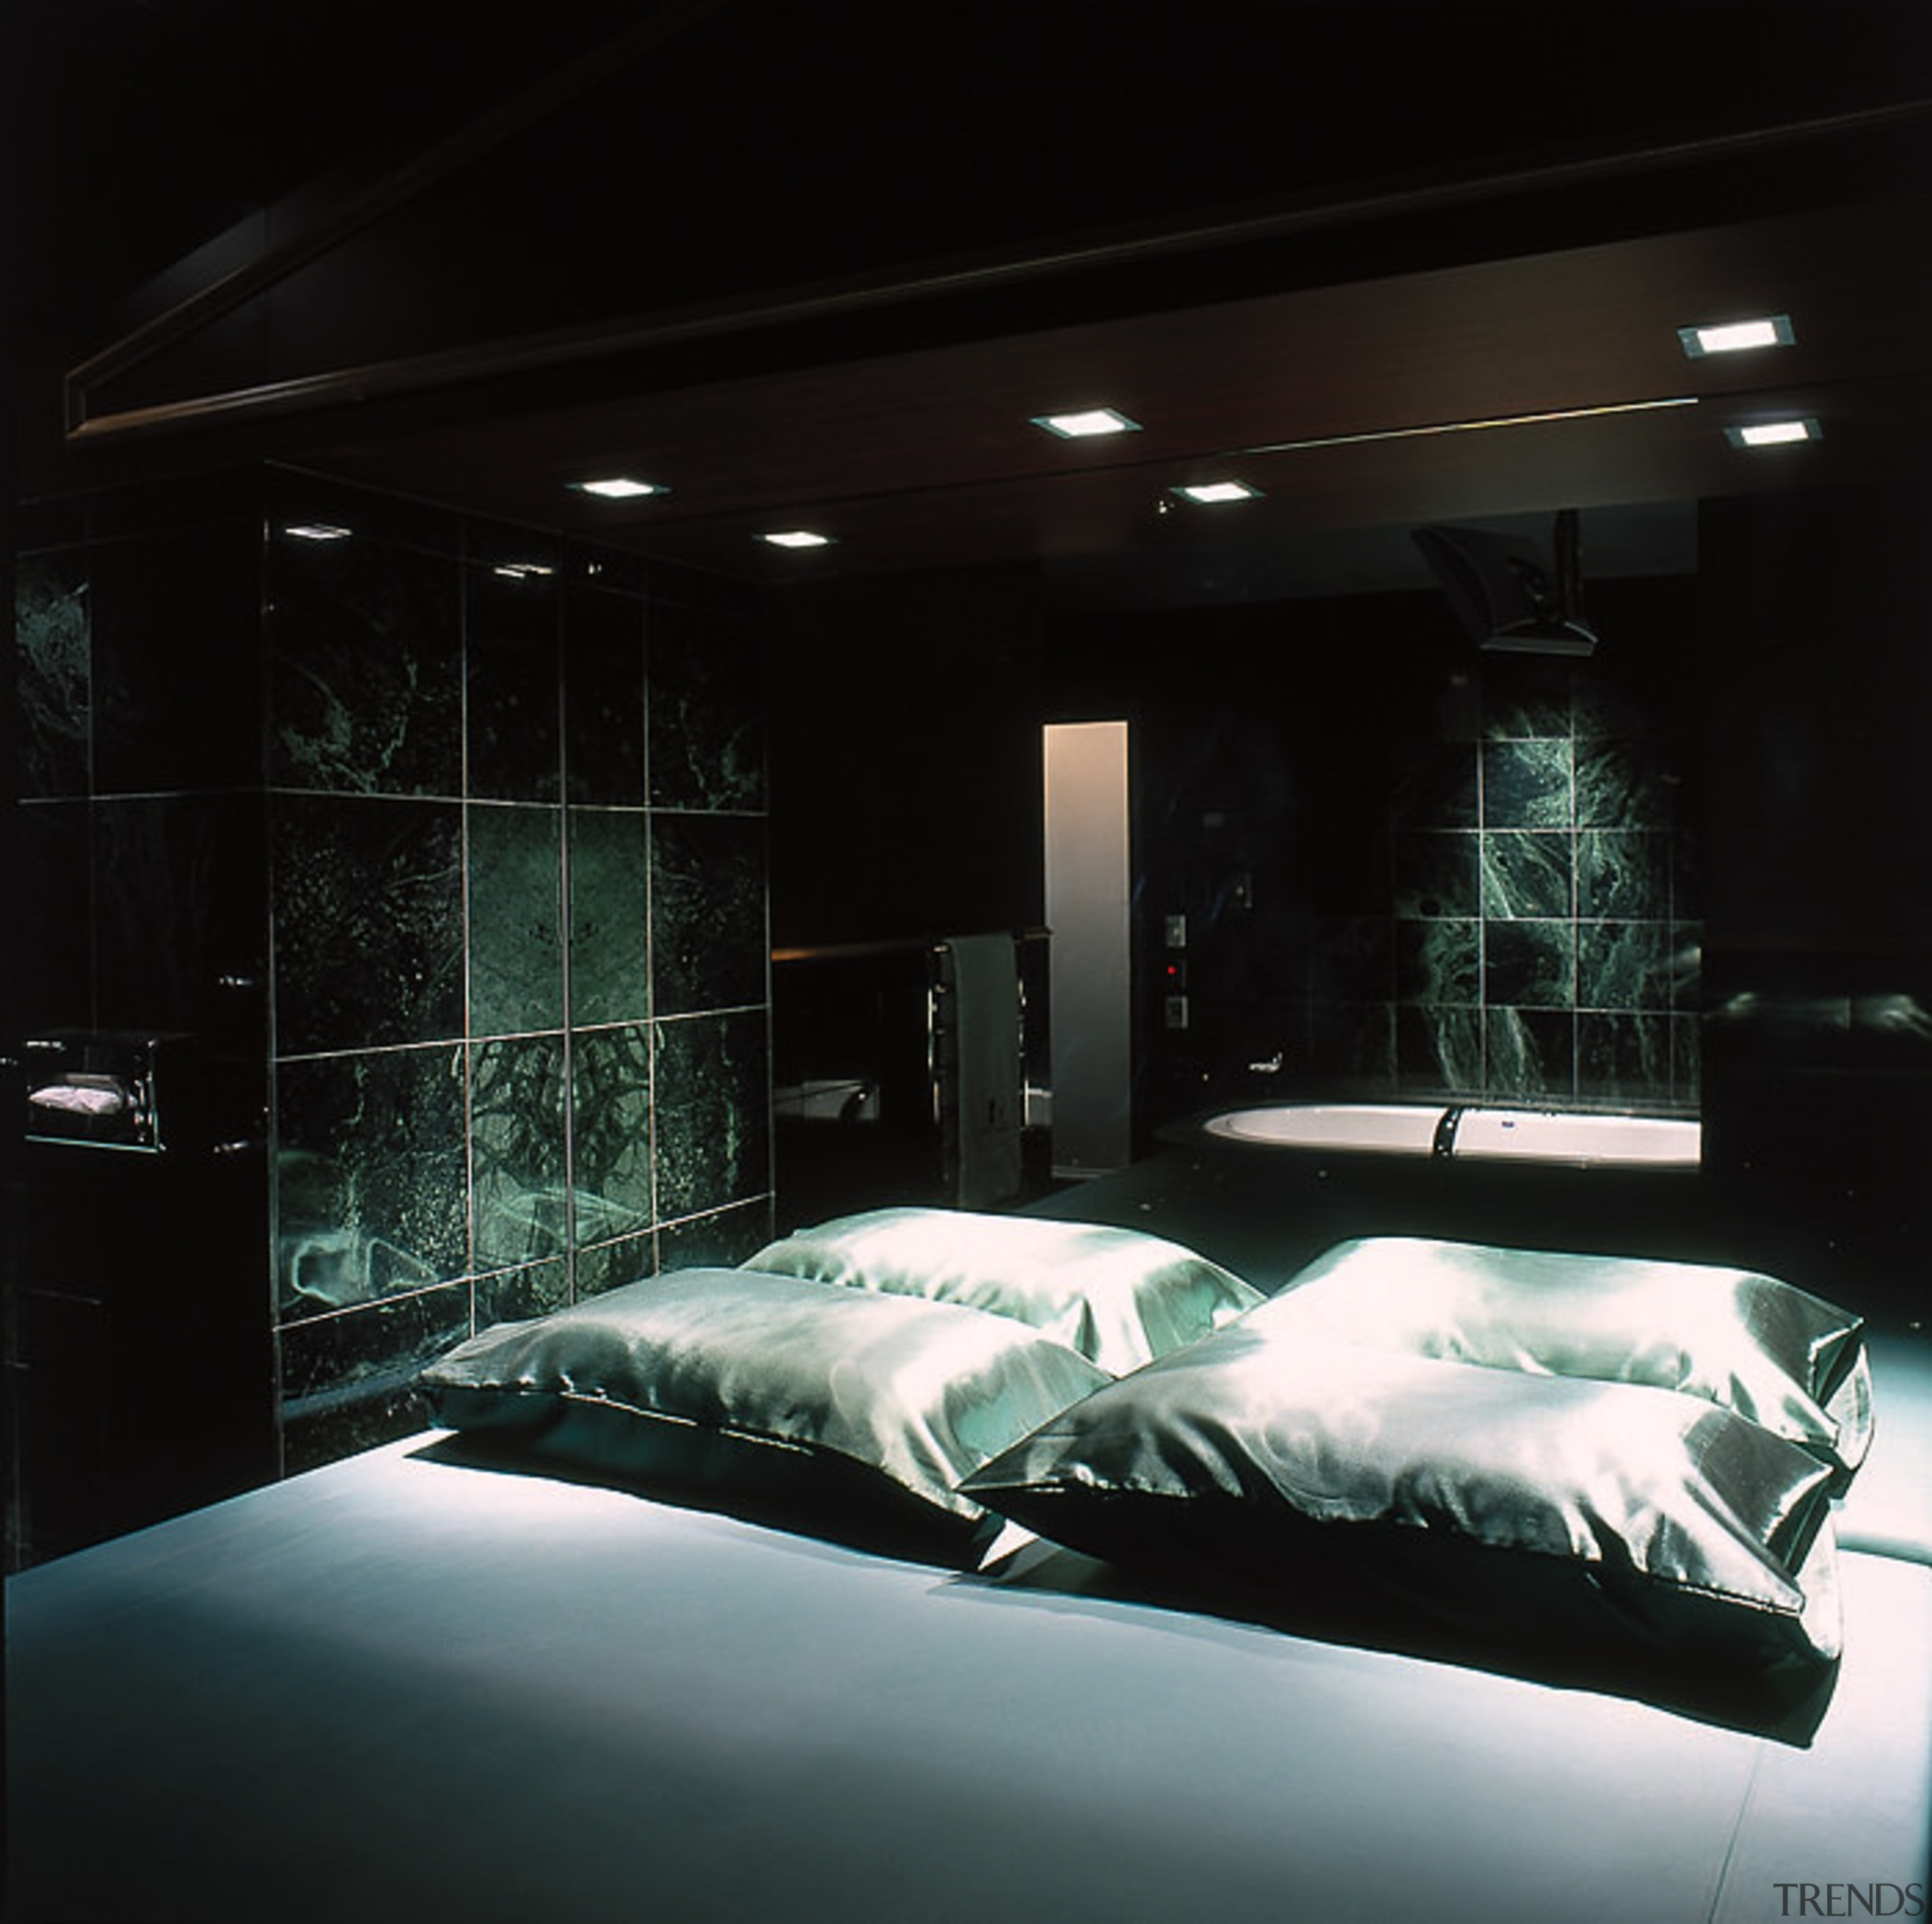 Bedroom With Black Pillows And Bedding Dark Green Marble Tiles On Walls White Bath In Background